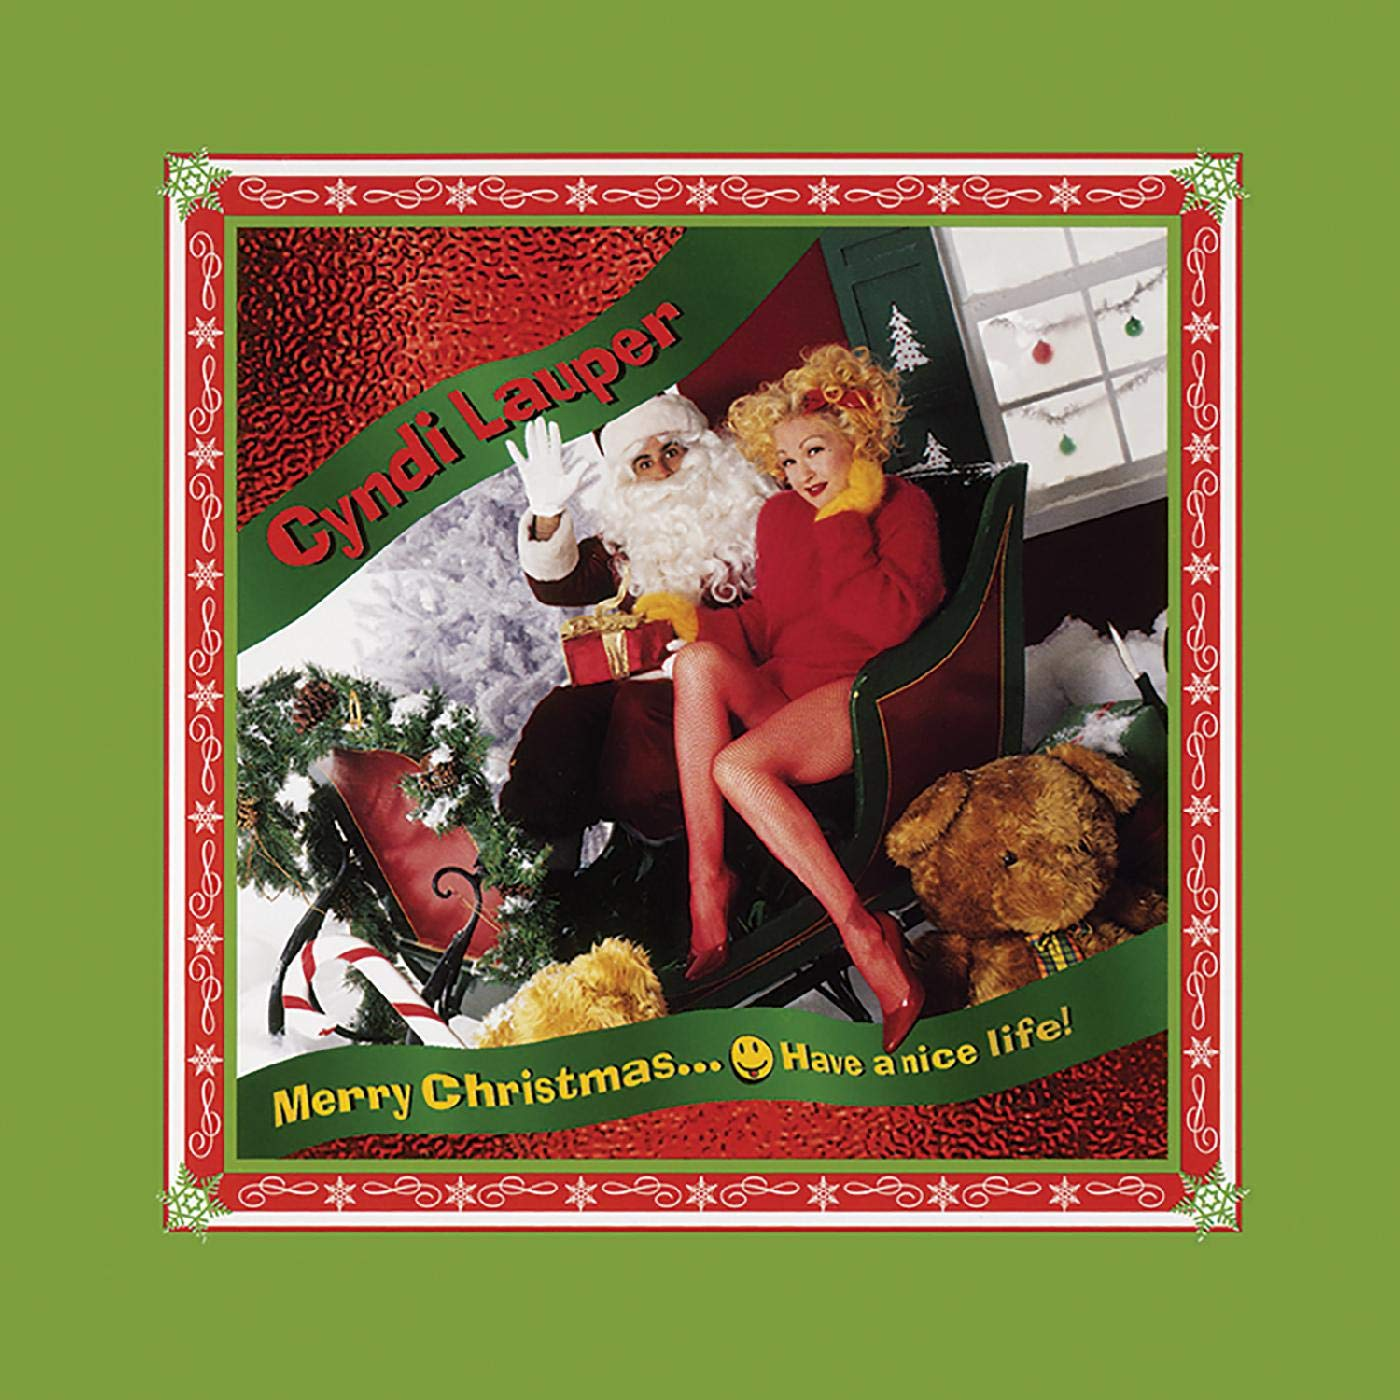 Merry Christmas...Have a Nice Life! Limited Green Vinyl Edition by Real Gone Music